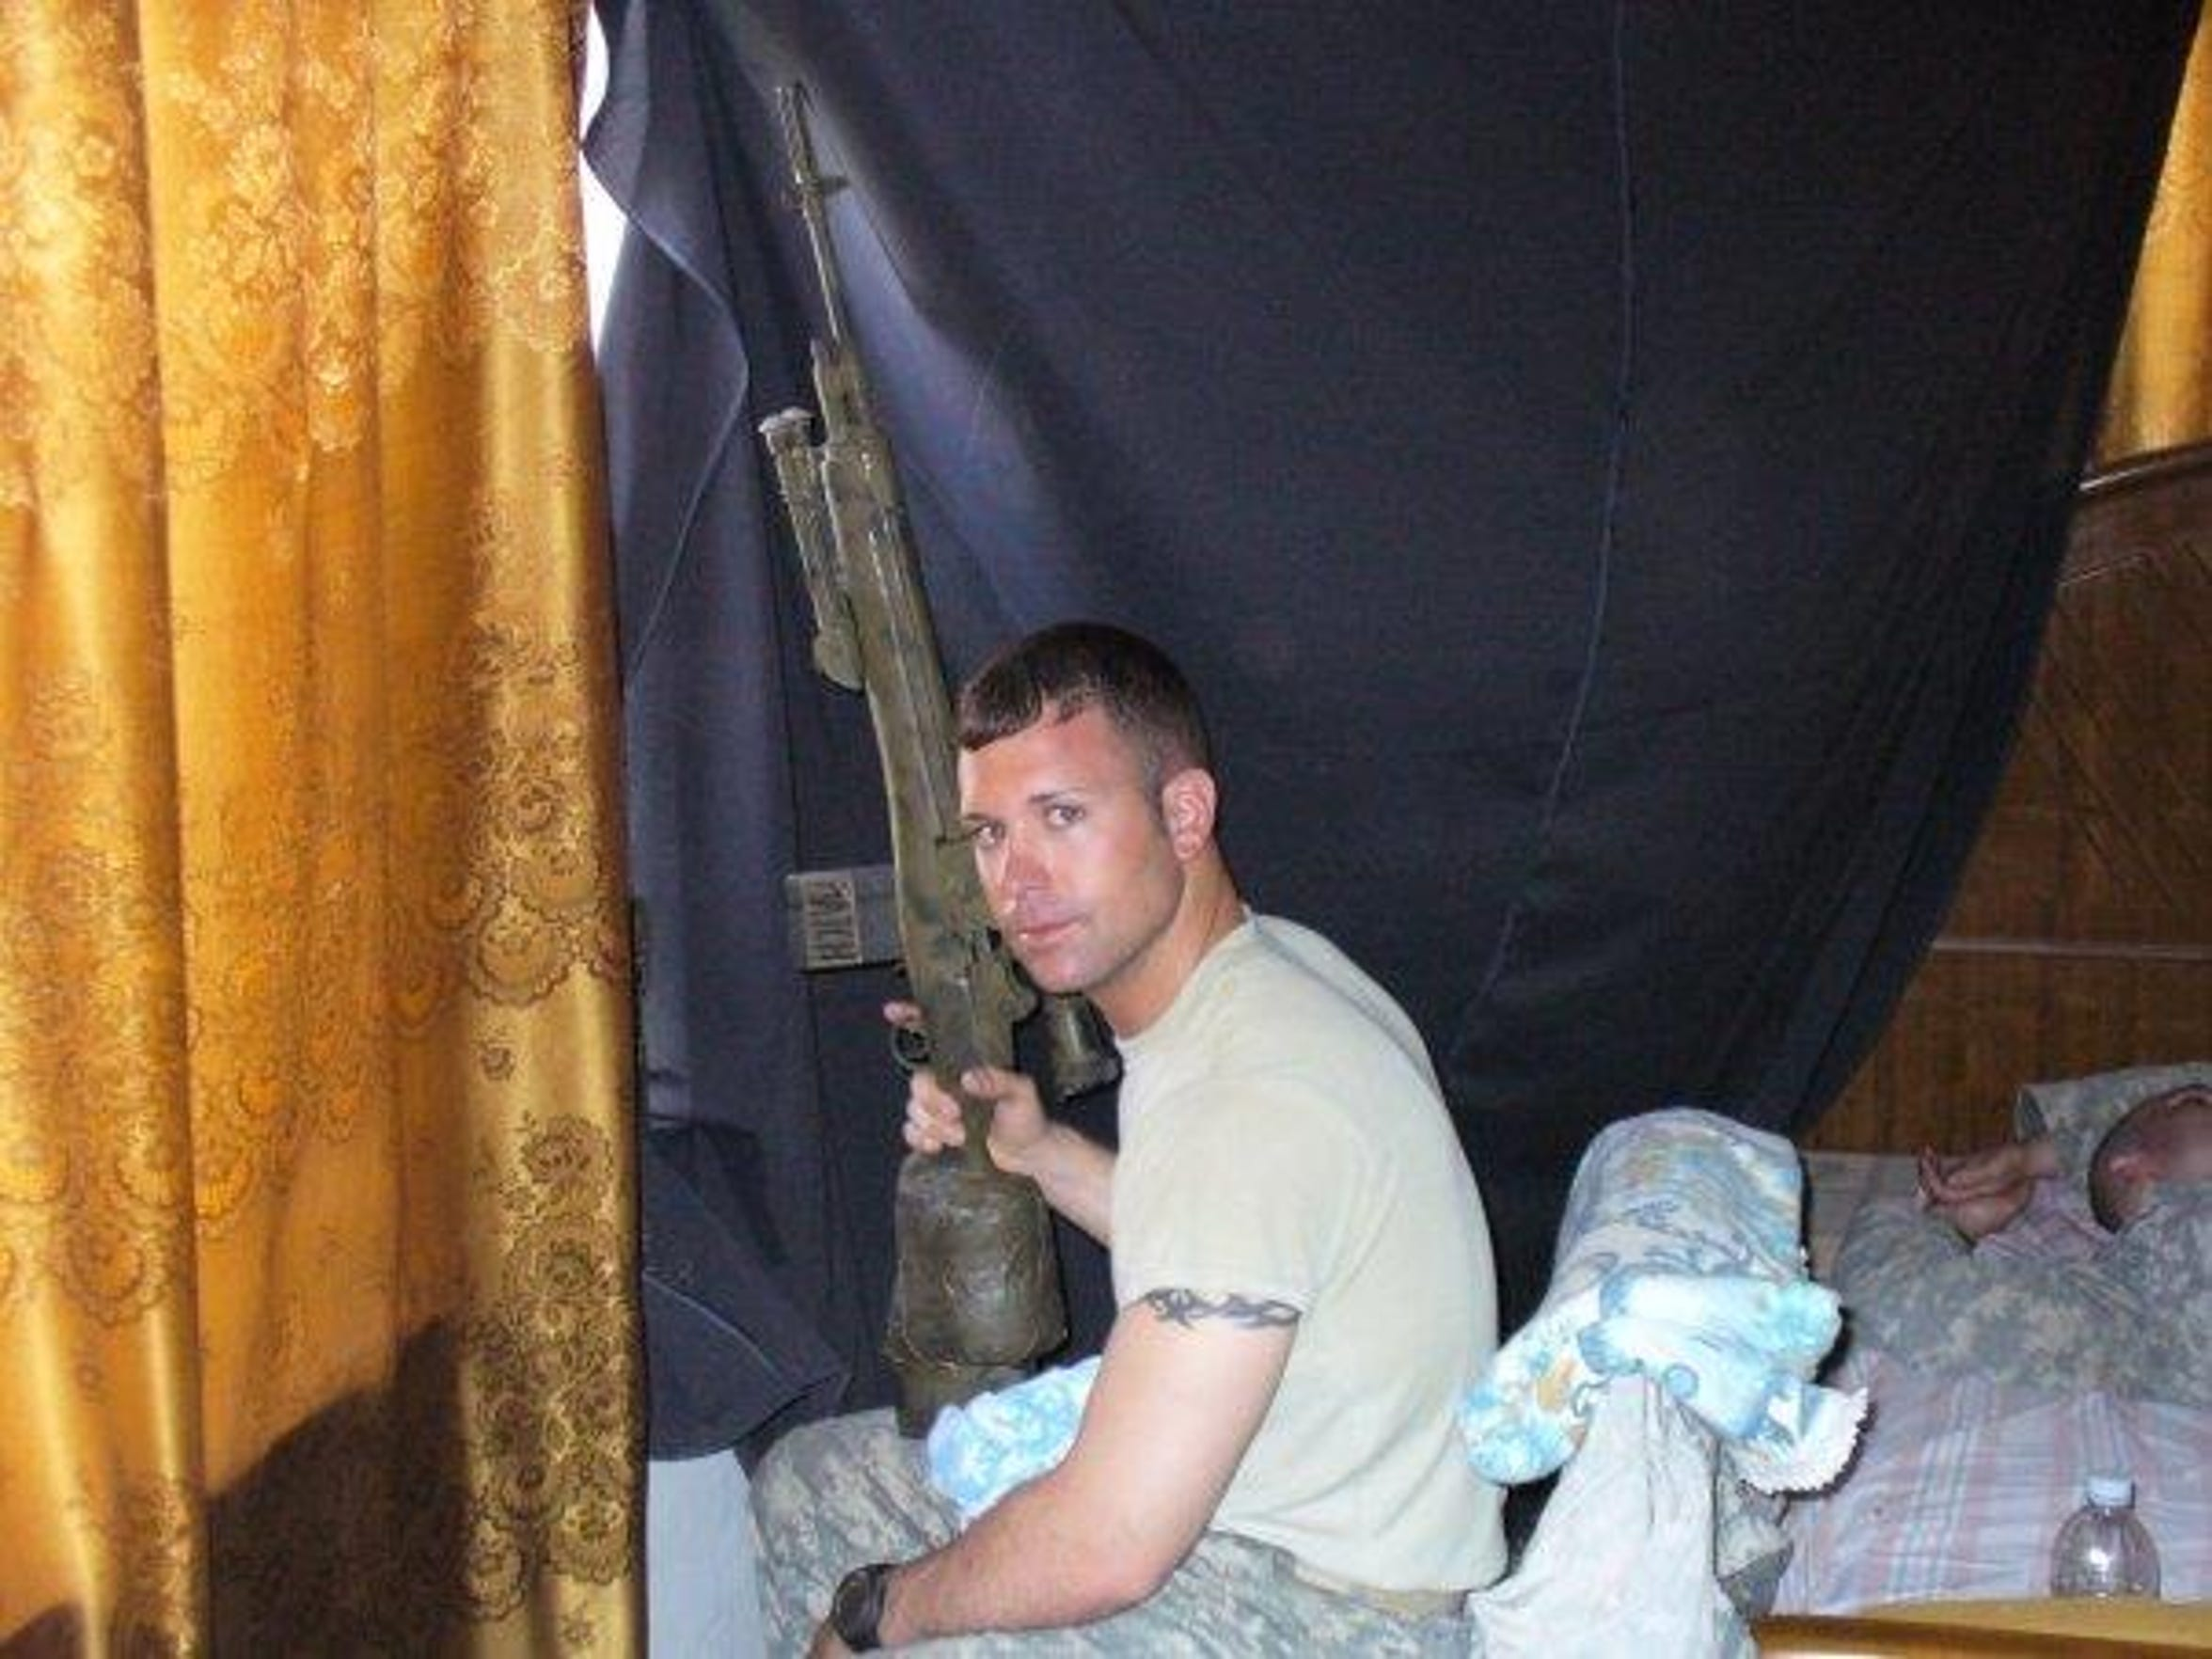 Sgt. Bobby Lightner in Iraq. Agifa Constable's Army